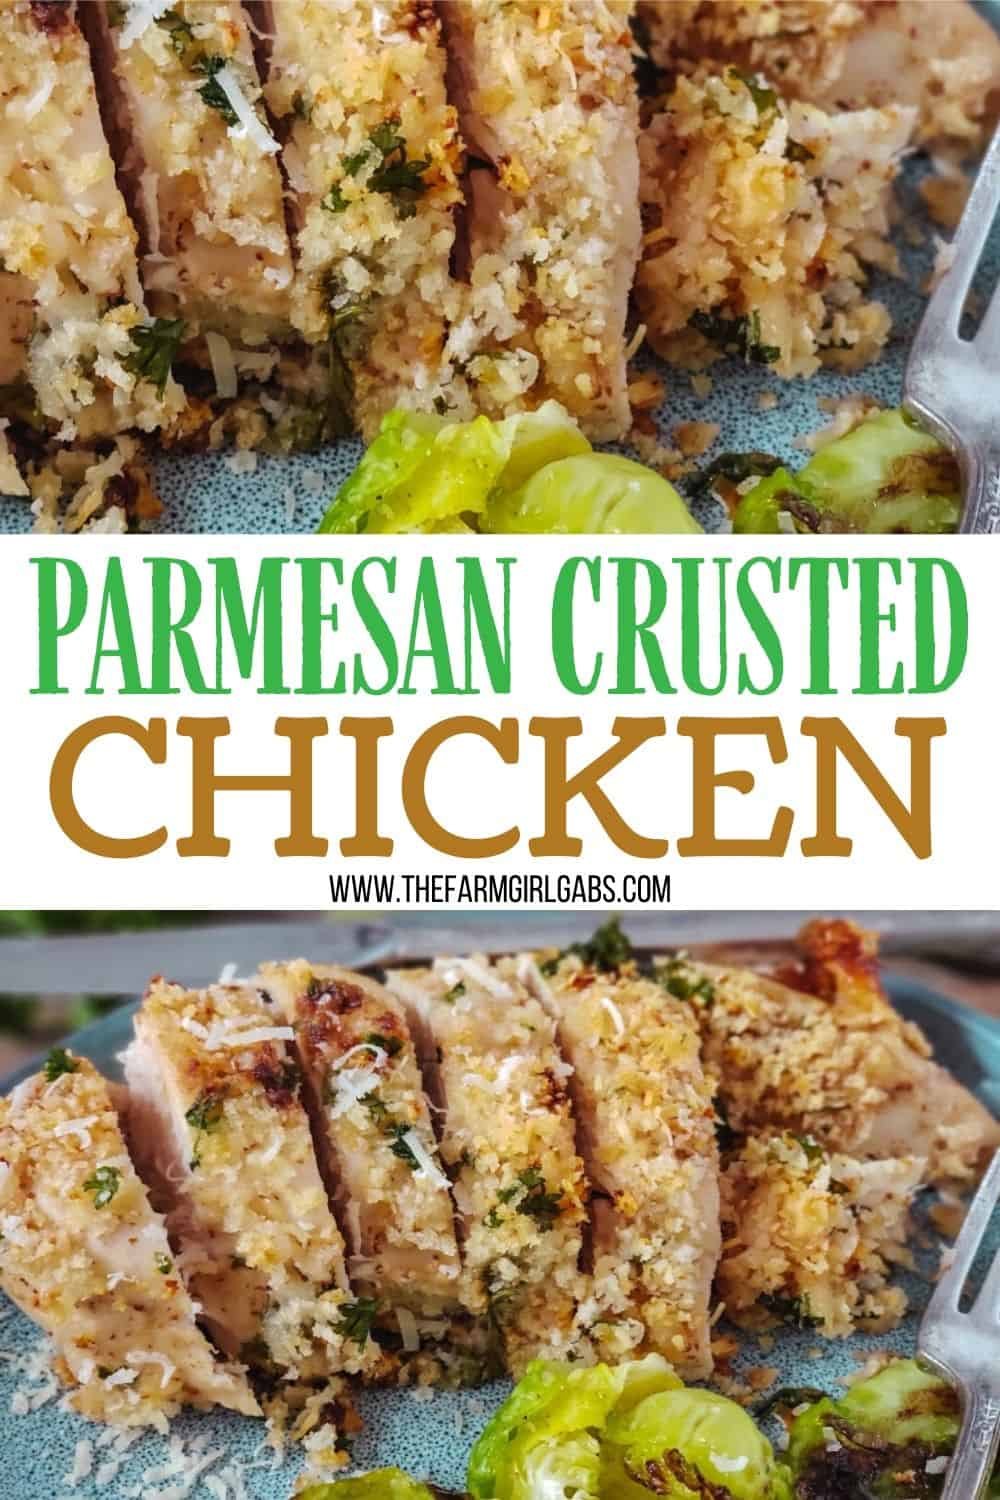 Tired of the same old chicken recipe for dinner? Mix things up with this easy and delicious Parmesan Dijon Chicken recipe for weeknight dinner.